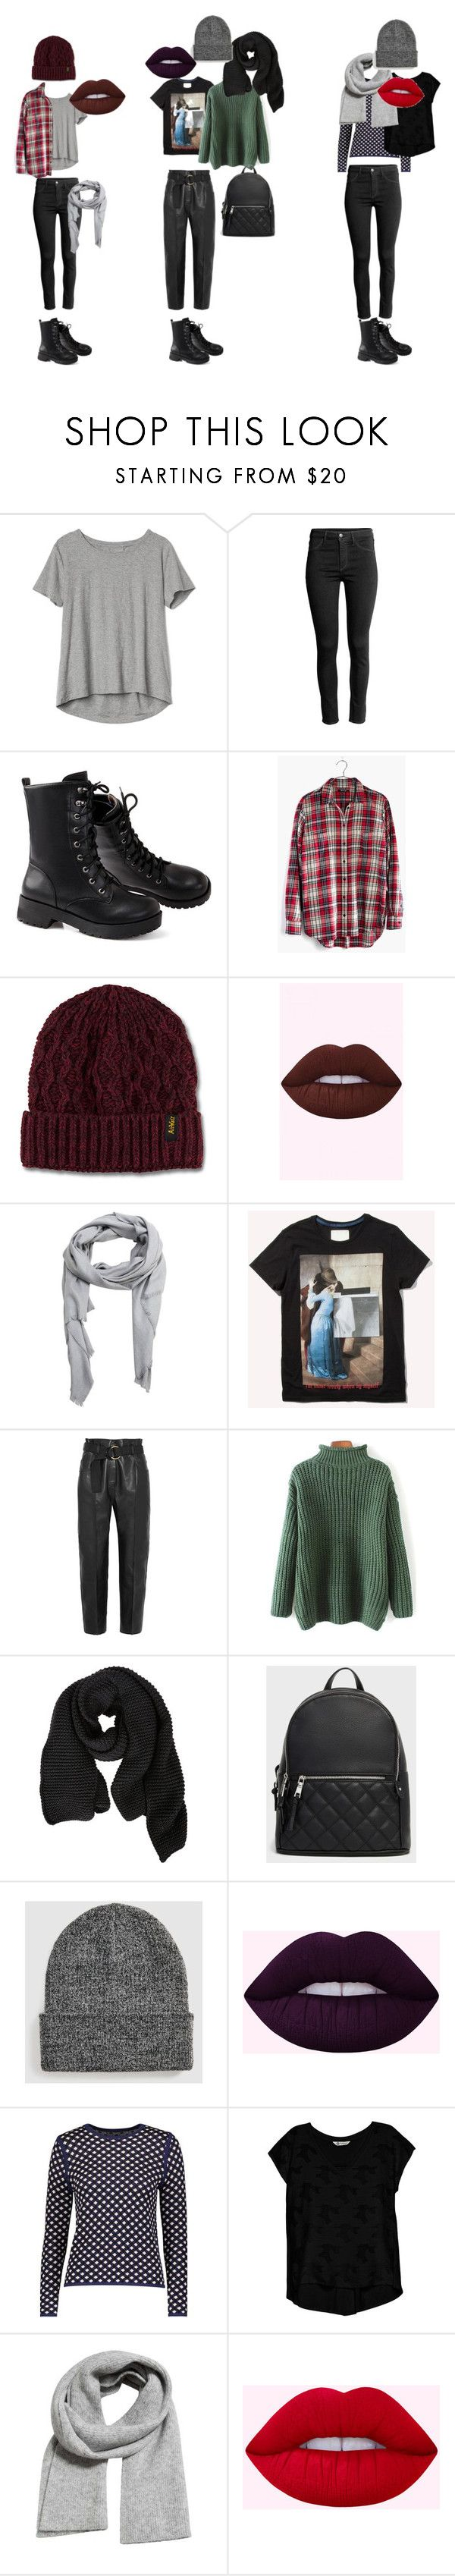 """Berlin1"" by reallifeofmimi ❤ liked on Polyvore featuring Gap, Madewell, Dr. Martens, MANGO, Petar Petrov, FABIANA FILIPPI, YAL New York and Bobeau"